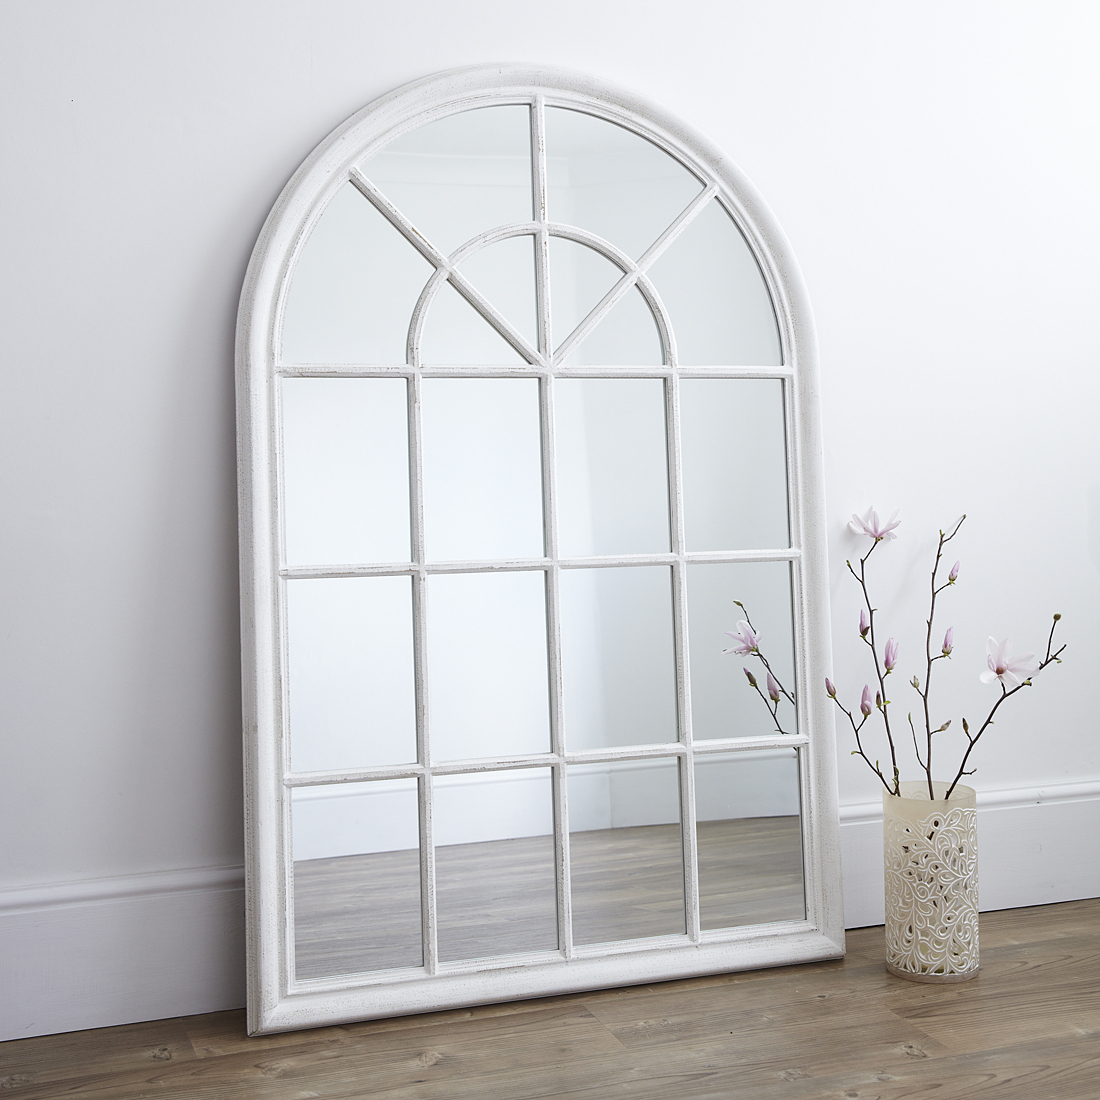 Widely Used White Arched Window Wall Mirror Primrose Plum Exterior Windows Regarding Wall Mirrors With Shutters (View 14 of 20)